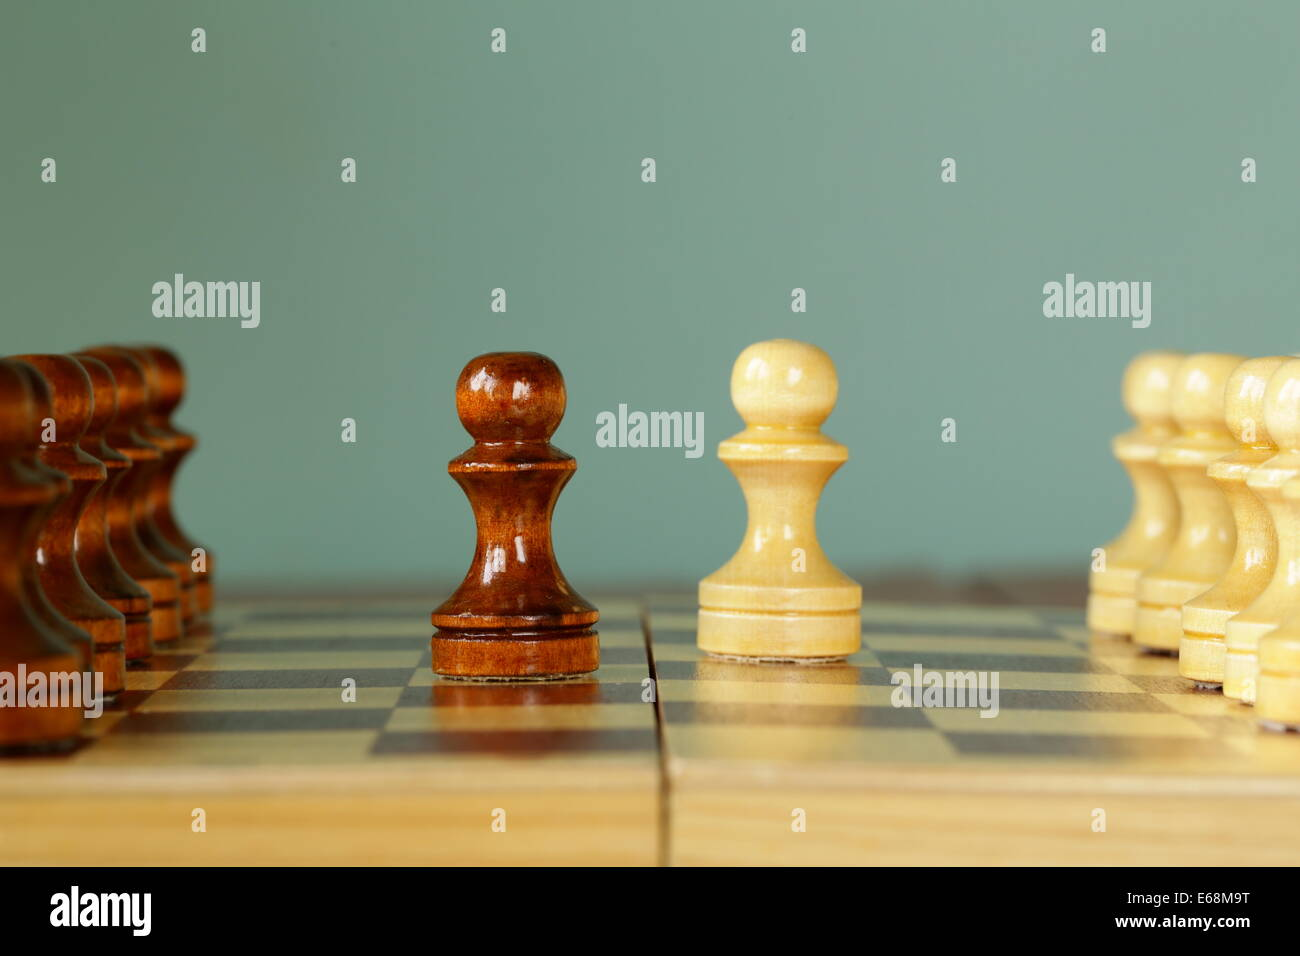 chess position - opponents started the game (each made pawn move) - Stock Image